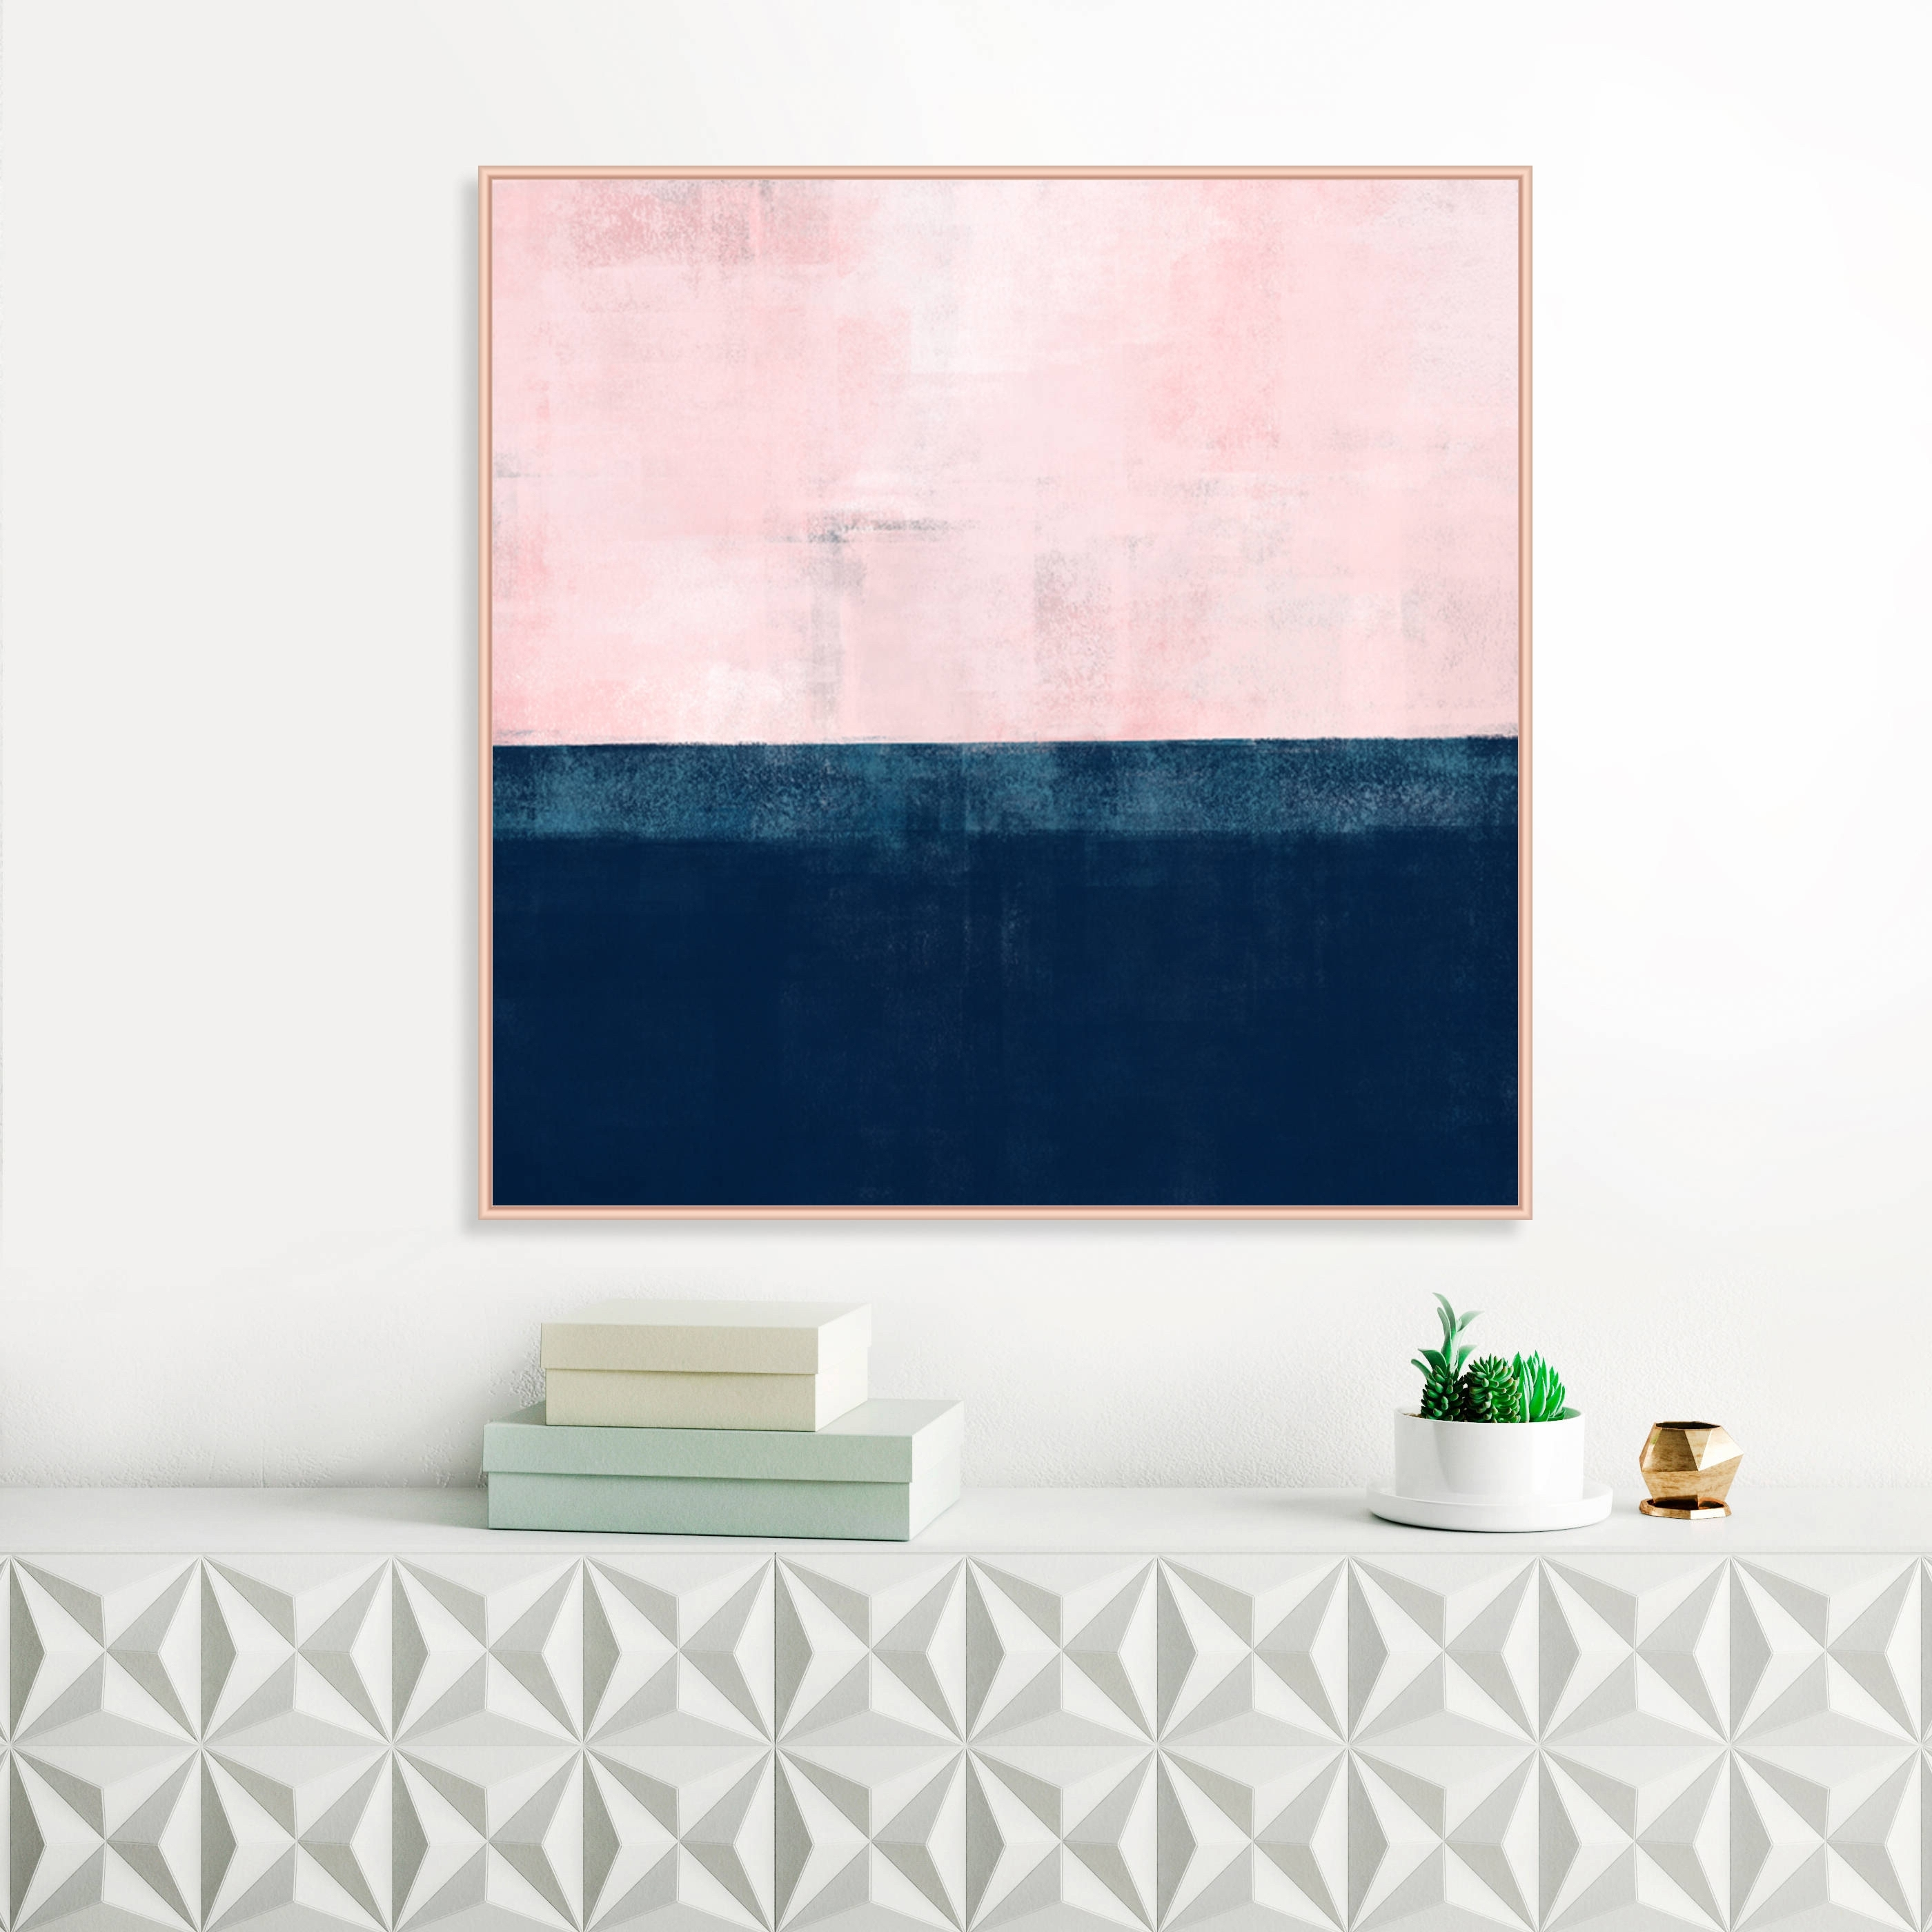 Pink Abstract Wall Art Pertaining To Well Known Pink And Navy Blue Abstract Art, Pink Wall Art, Pink Painting (View 11 of 15)